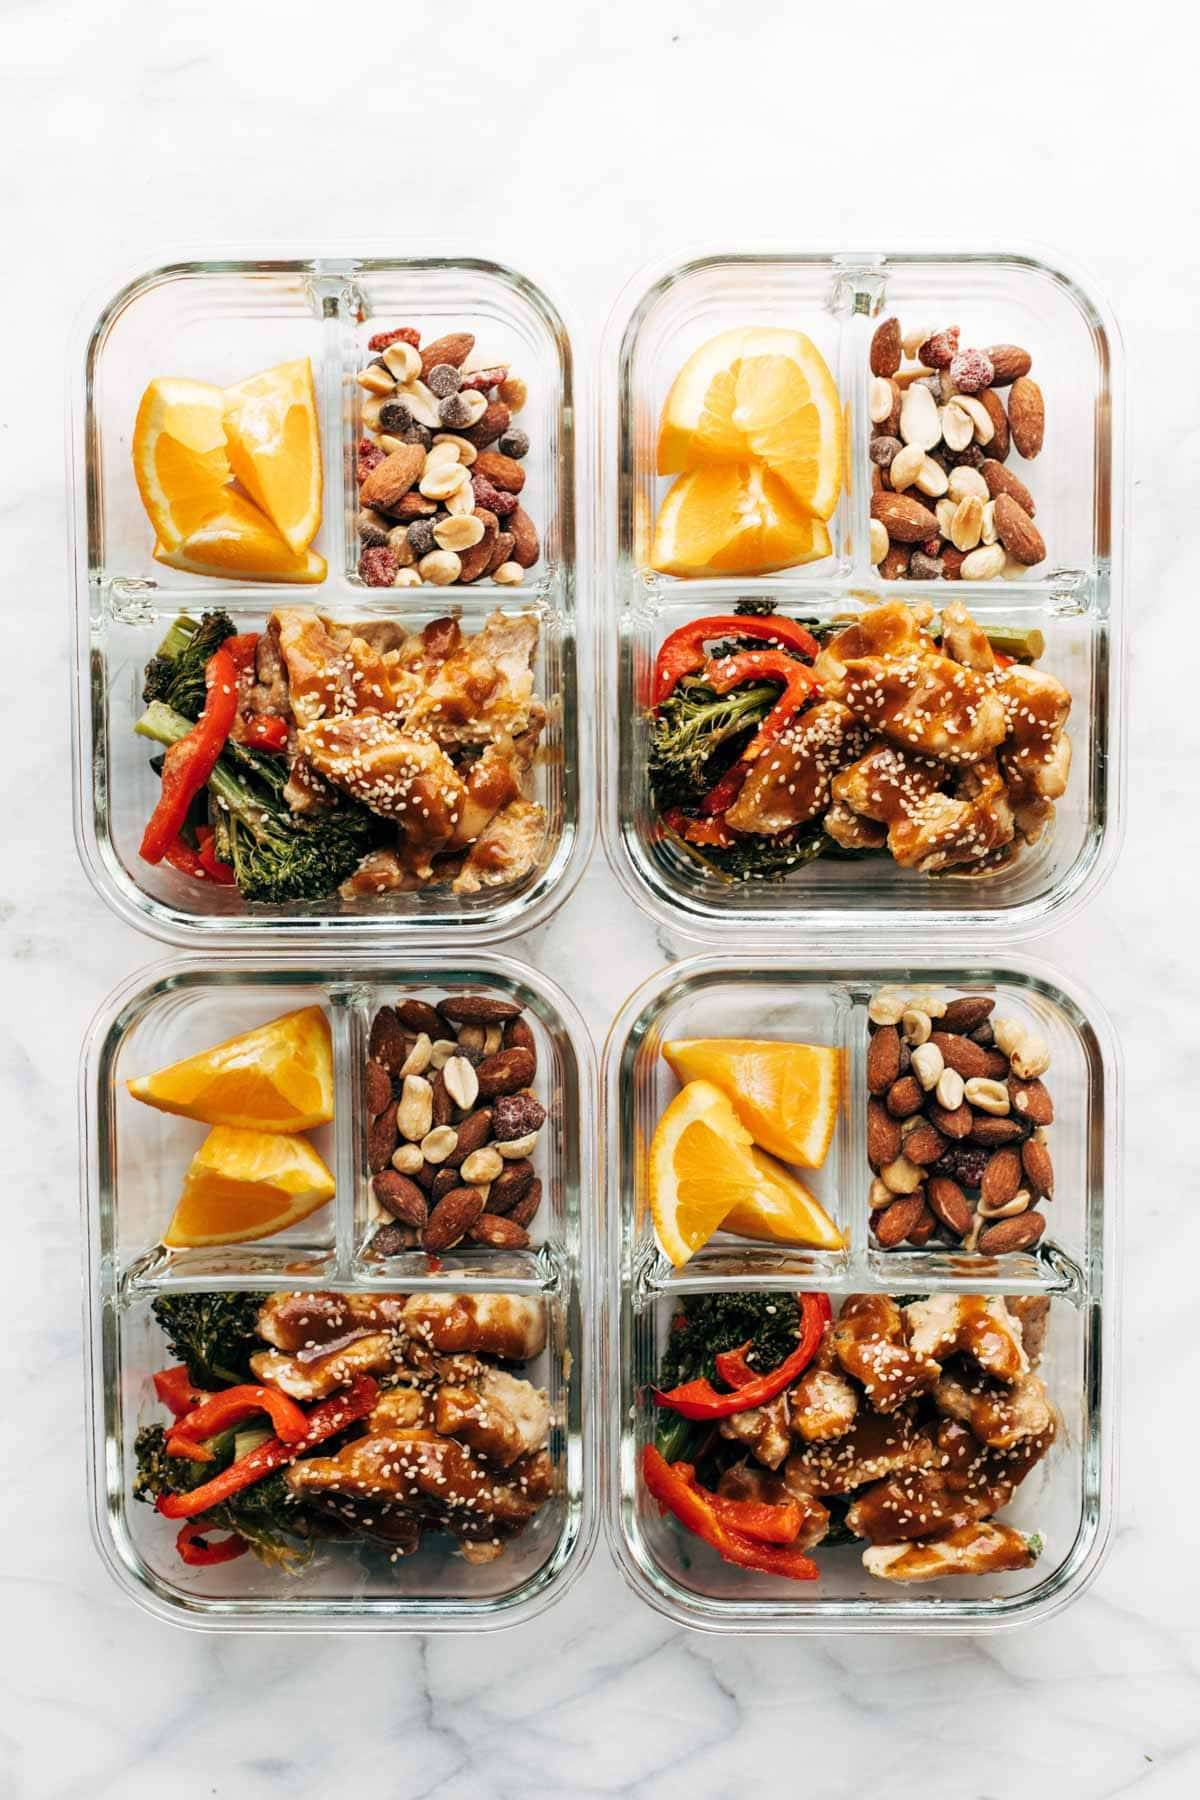 Garlic ginger chicken in meal prep containers.